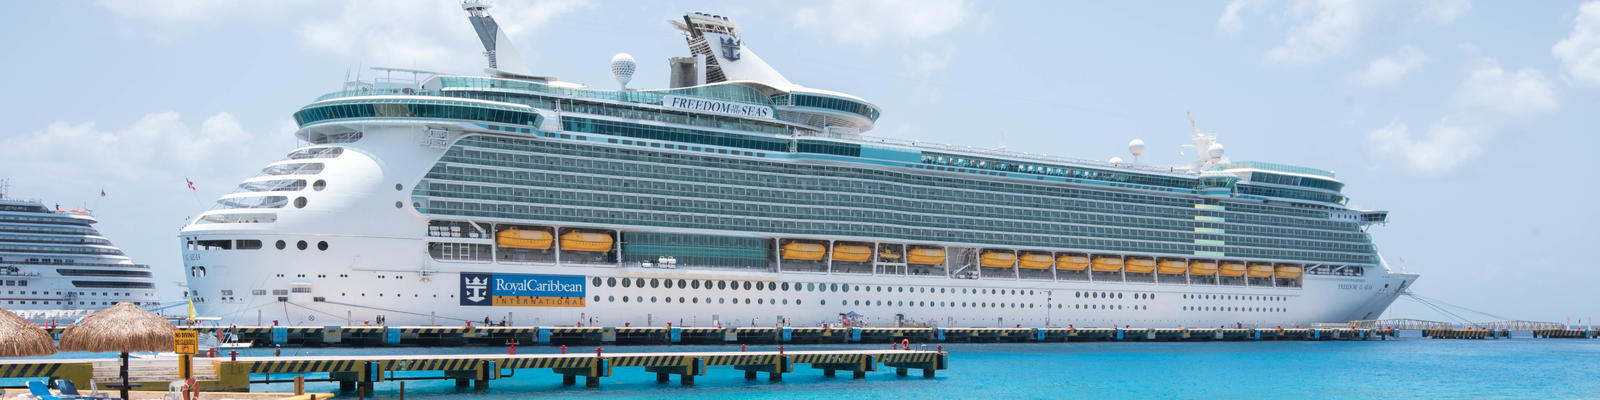 Freedom of the Seas in Cozumel (Photo: Cruise Critic)